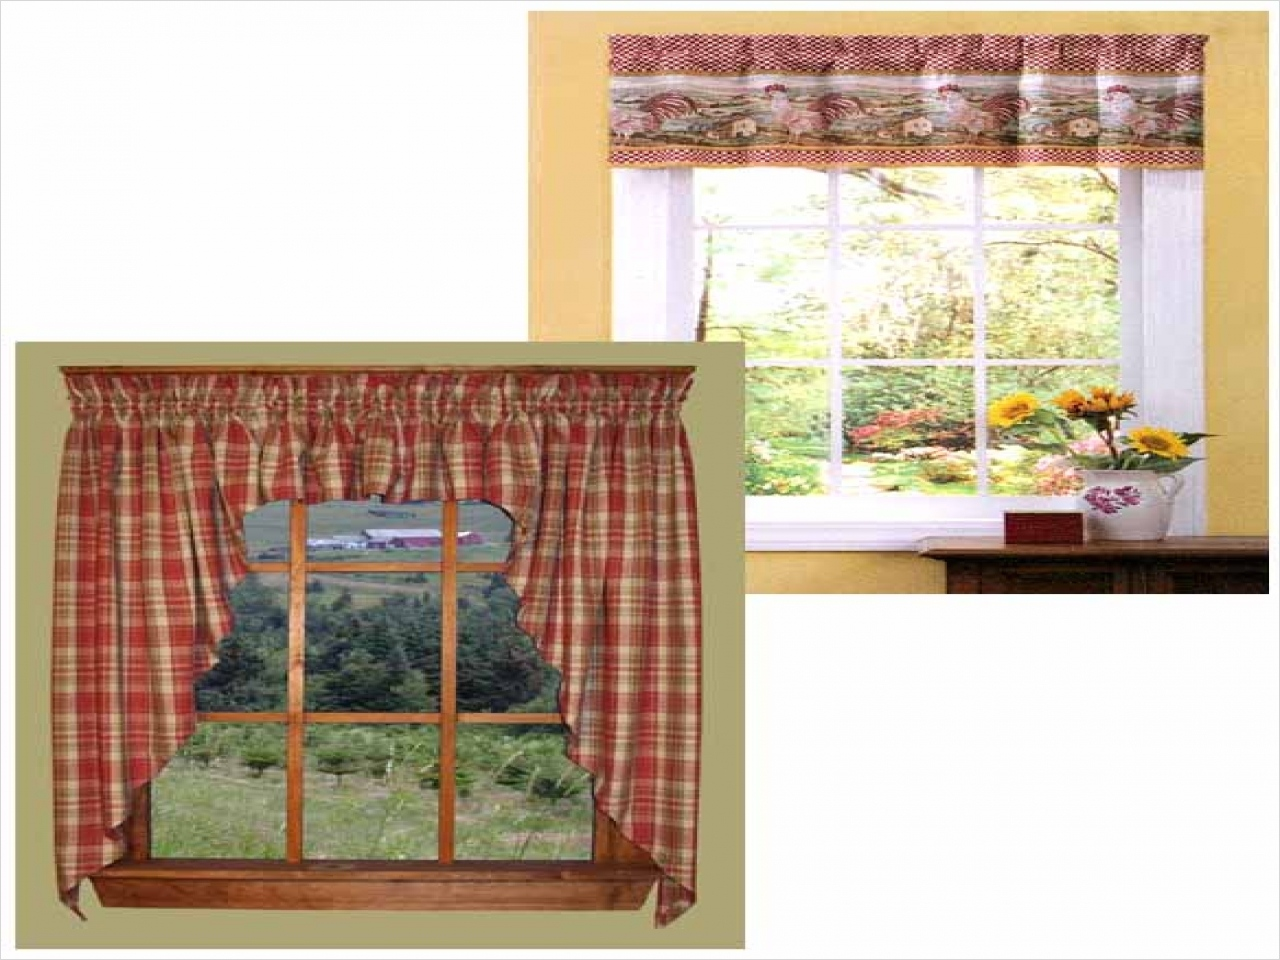 41 Perfect Farmhouse Country Kitchen Curtain Valances 81 Country Kitchen Images Farm Country Kitchen Curtain Valances Country Kitchen Window Curtains 6